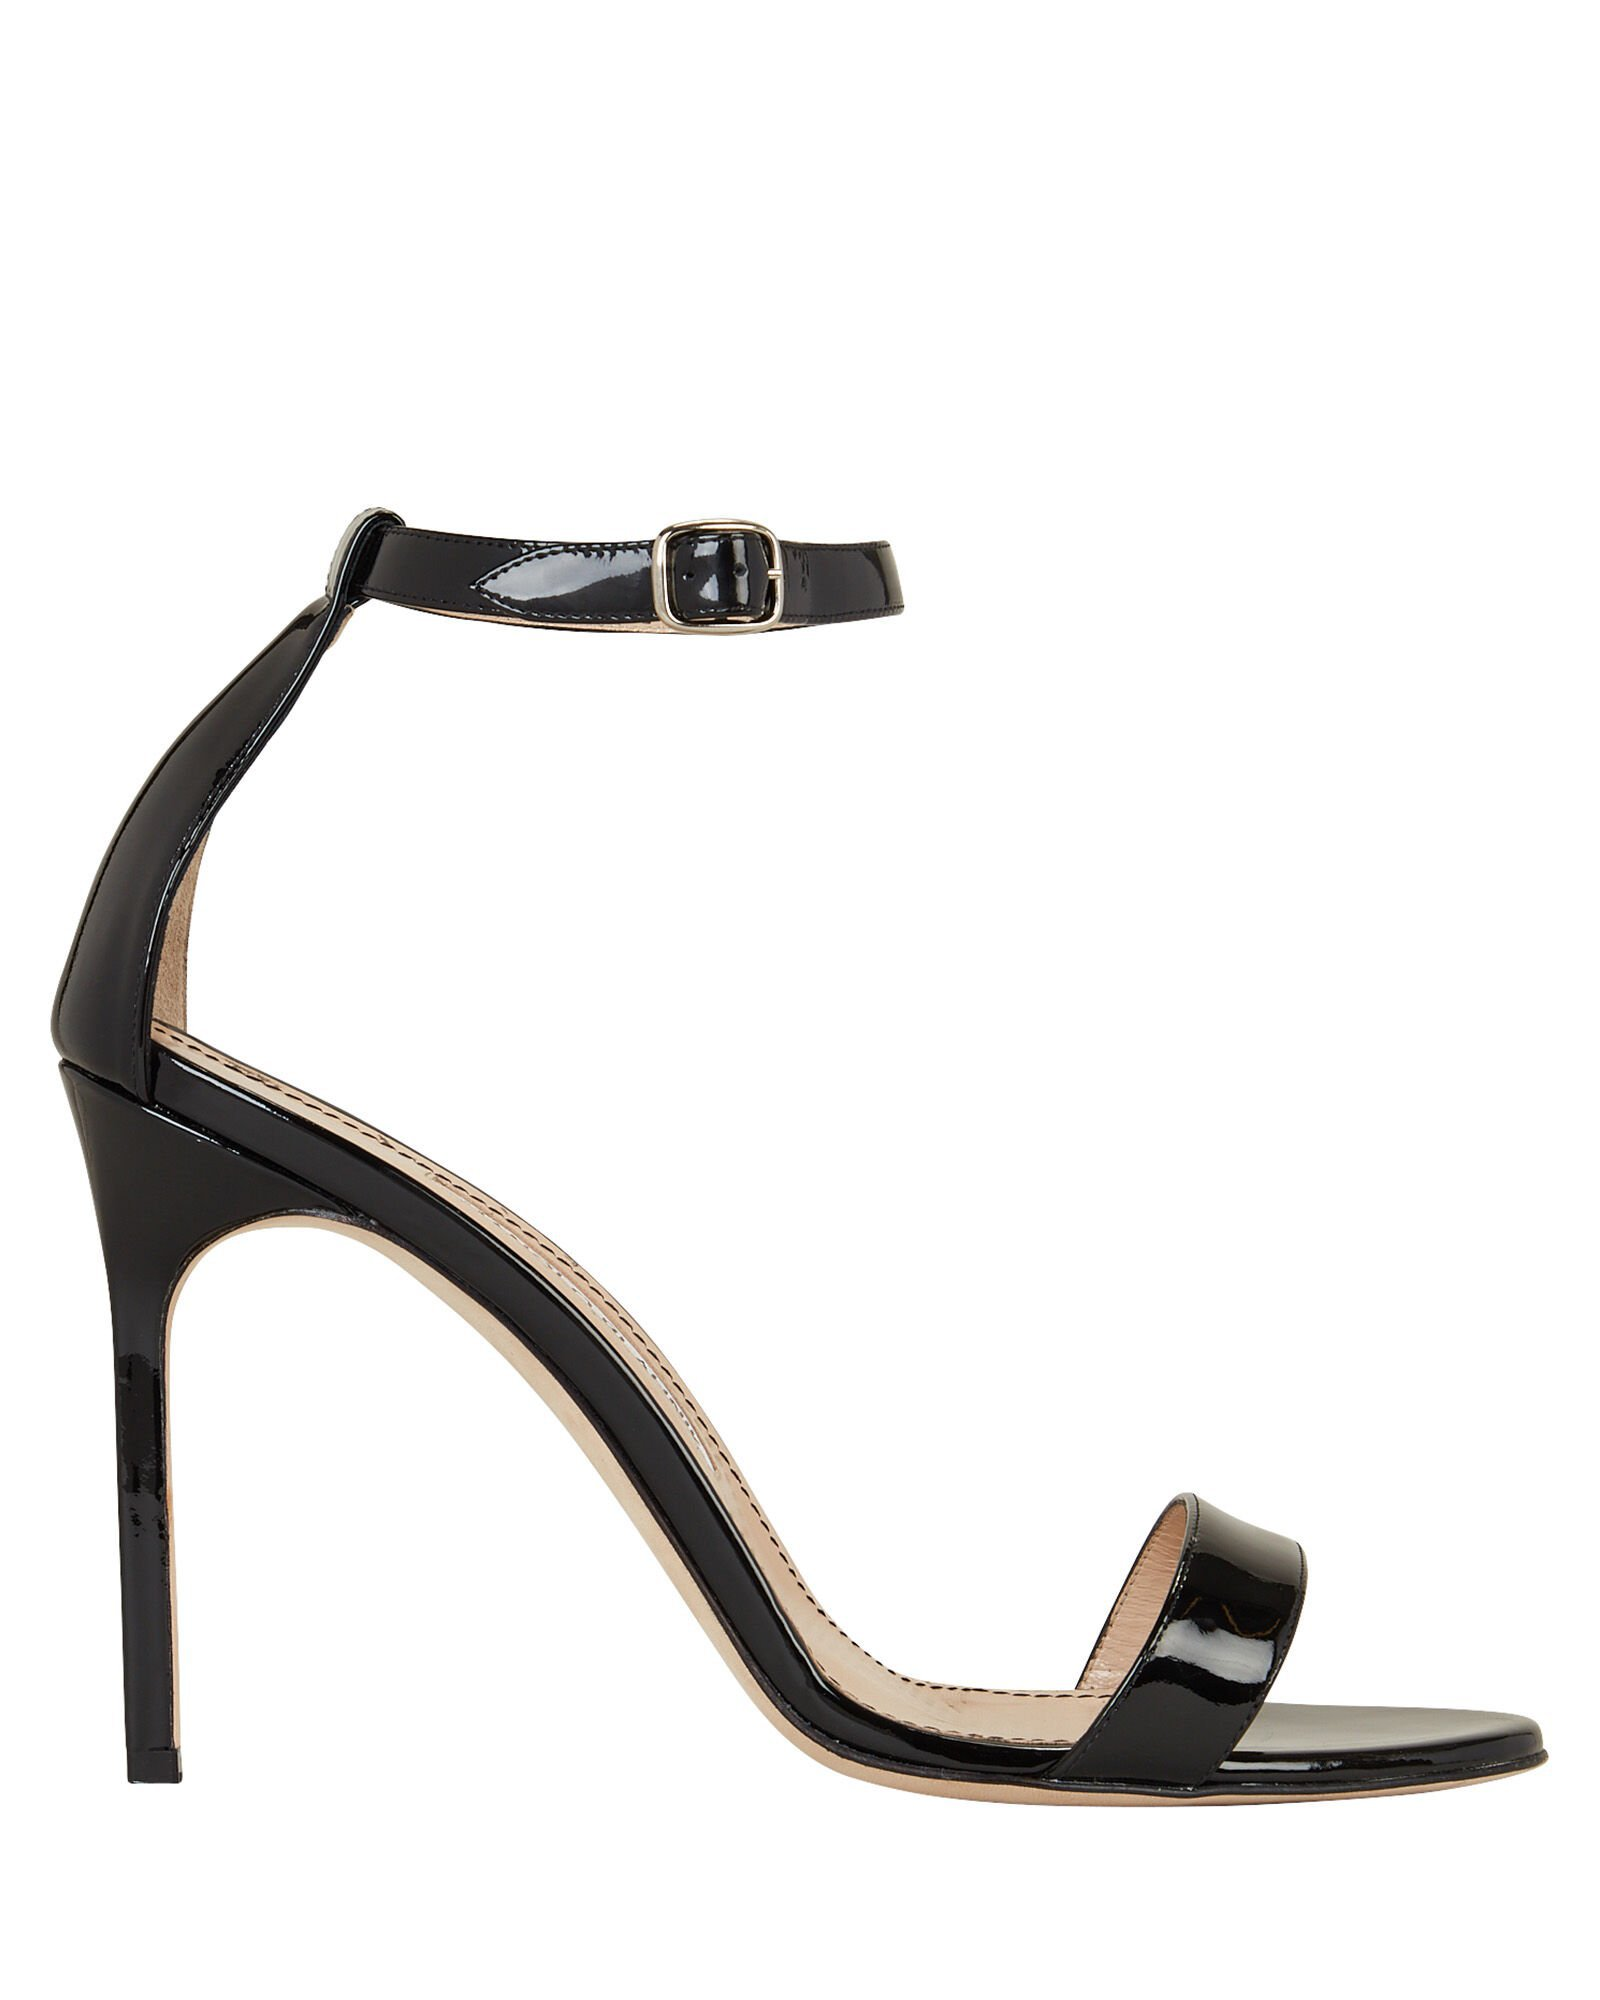 Chaos Patent Leather Heeled Sandals